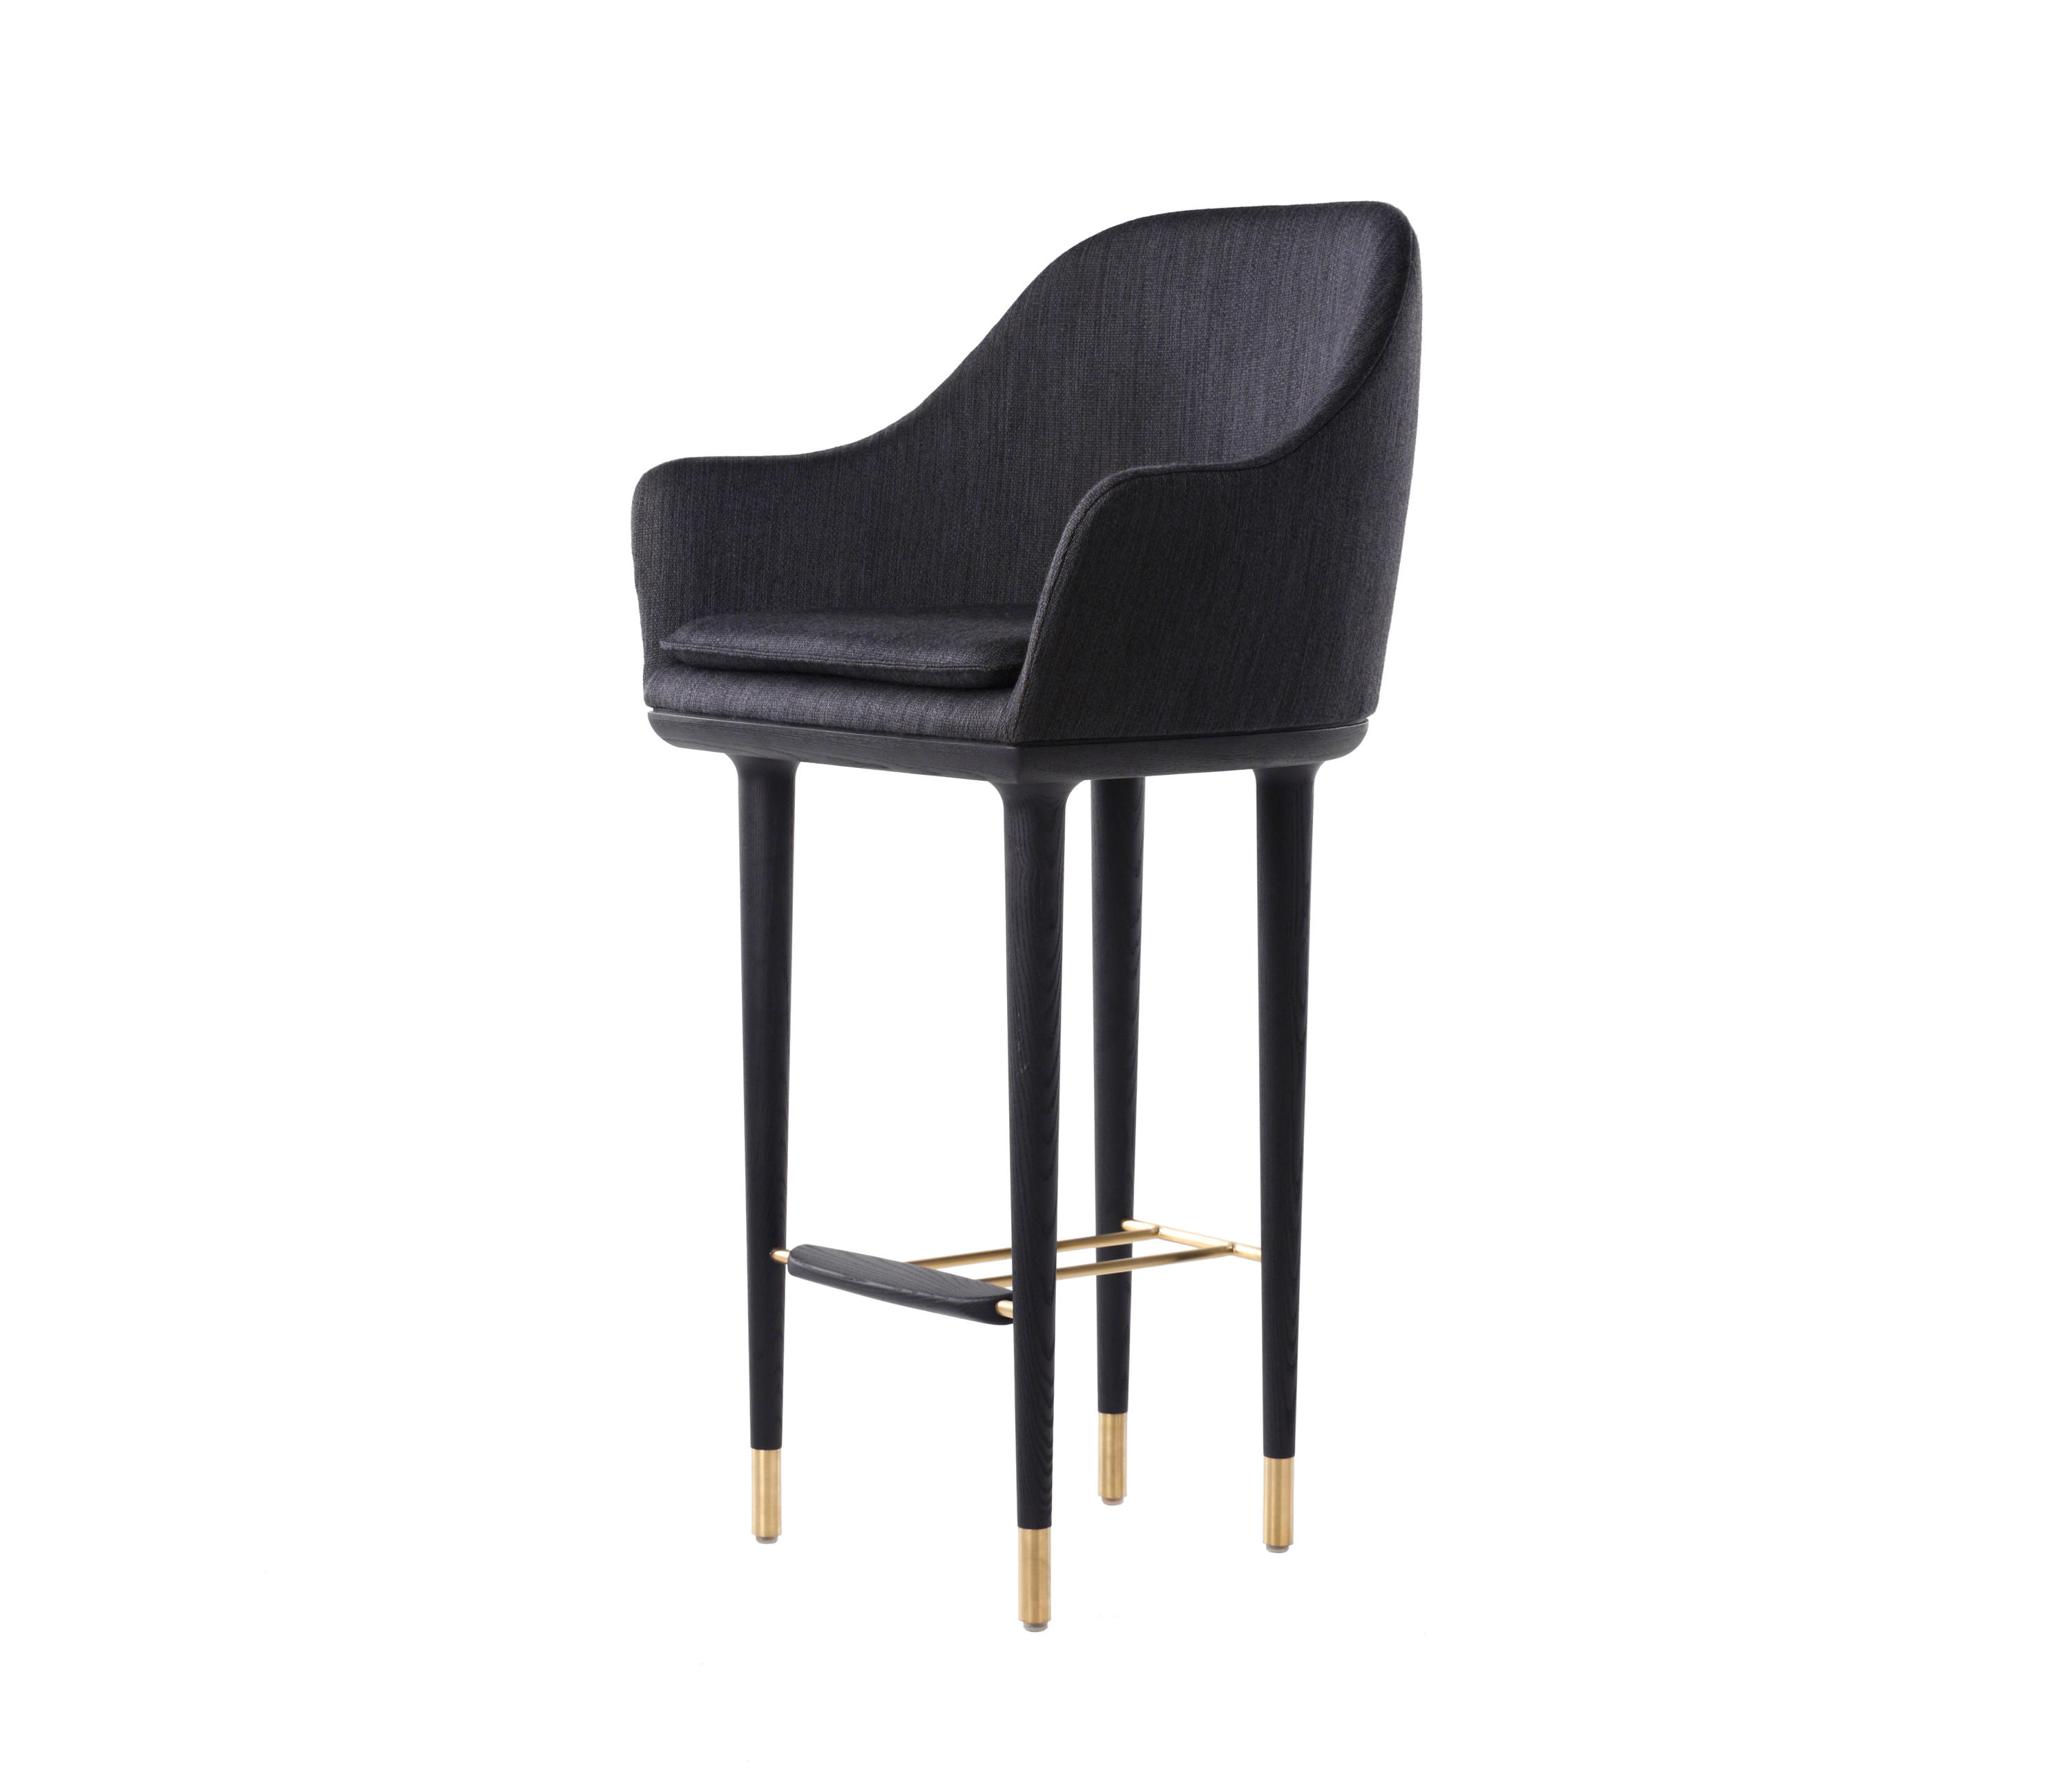 Lunar Bar Chair Bar Stools From Stellar Works Architonic